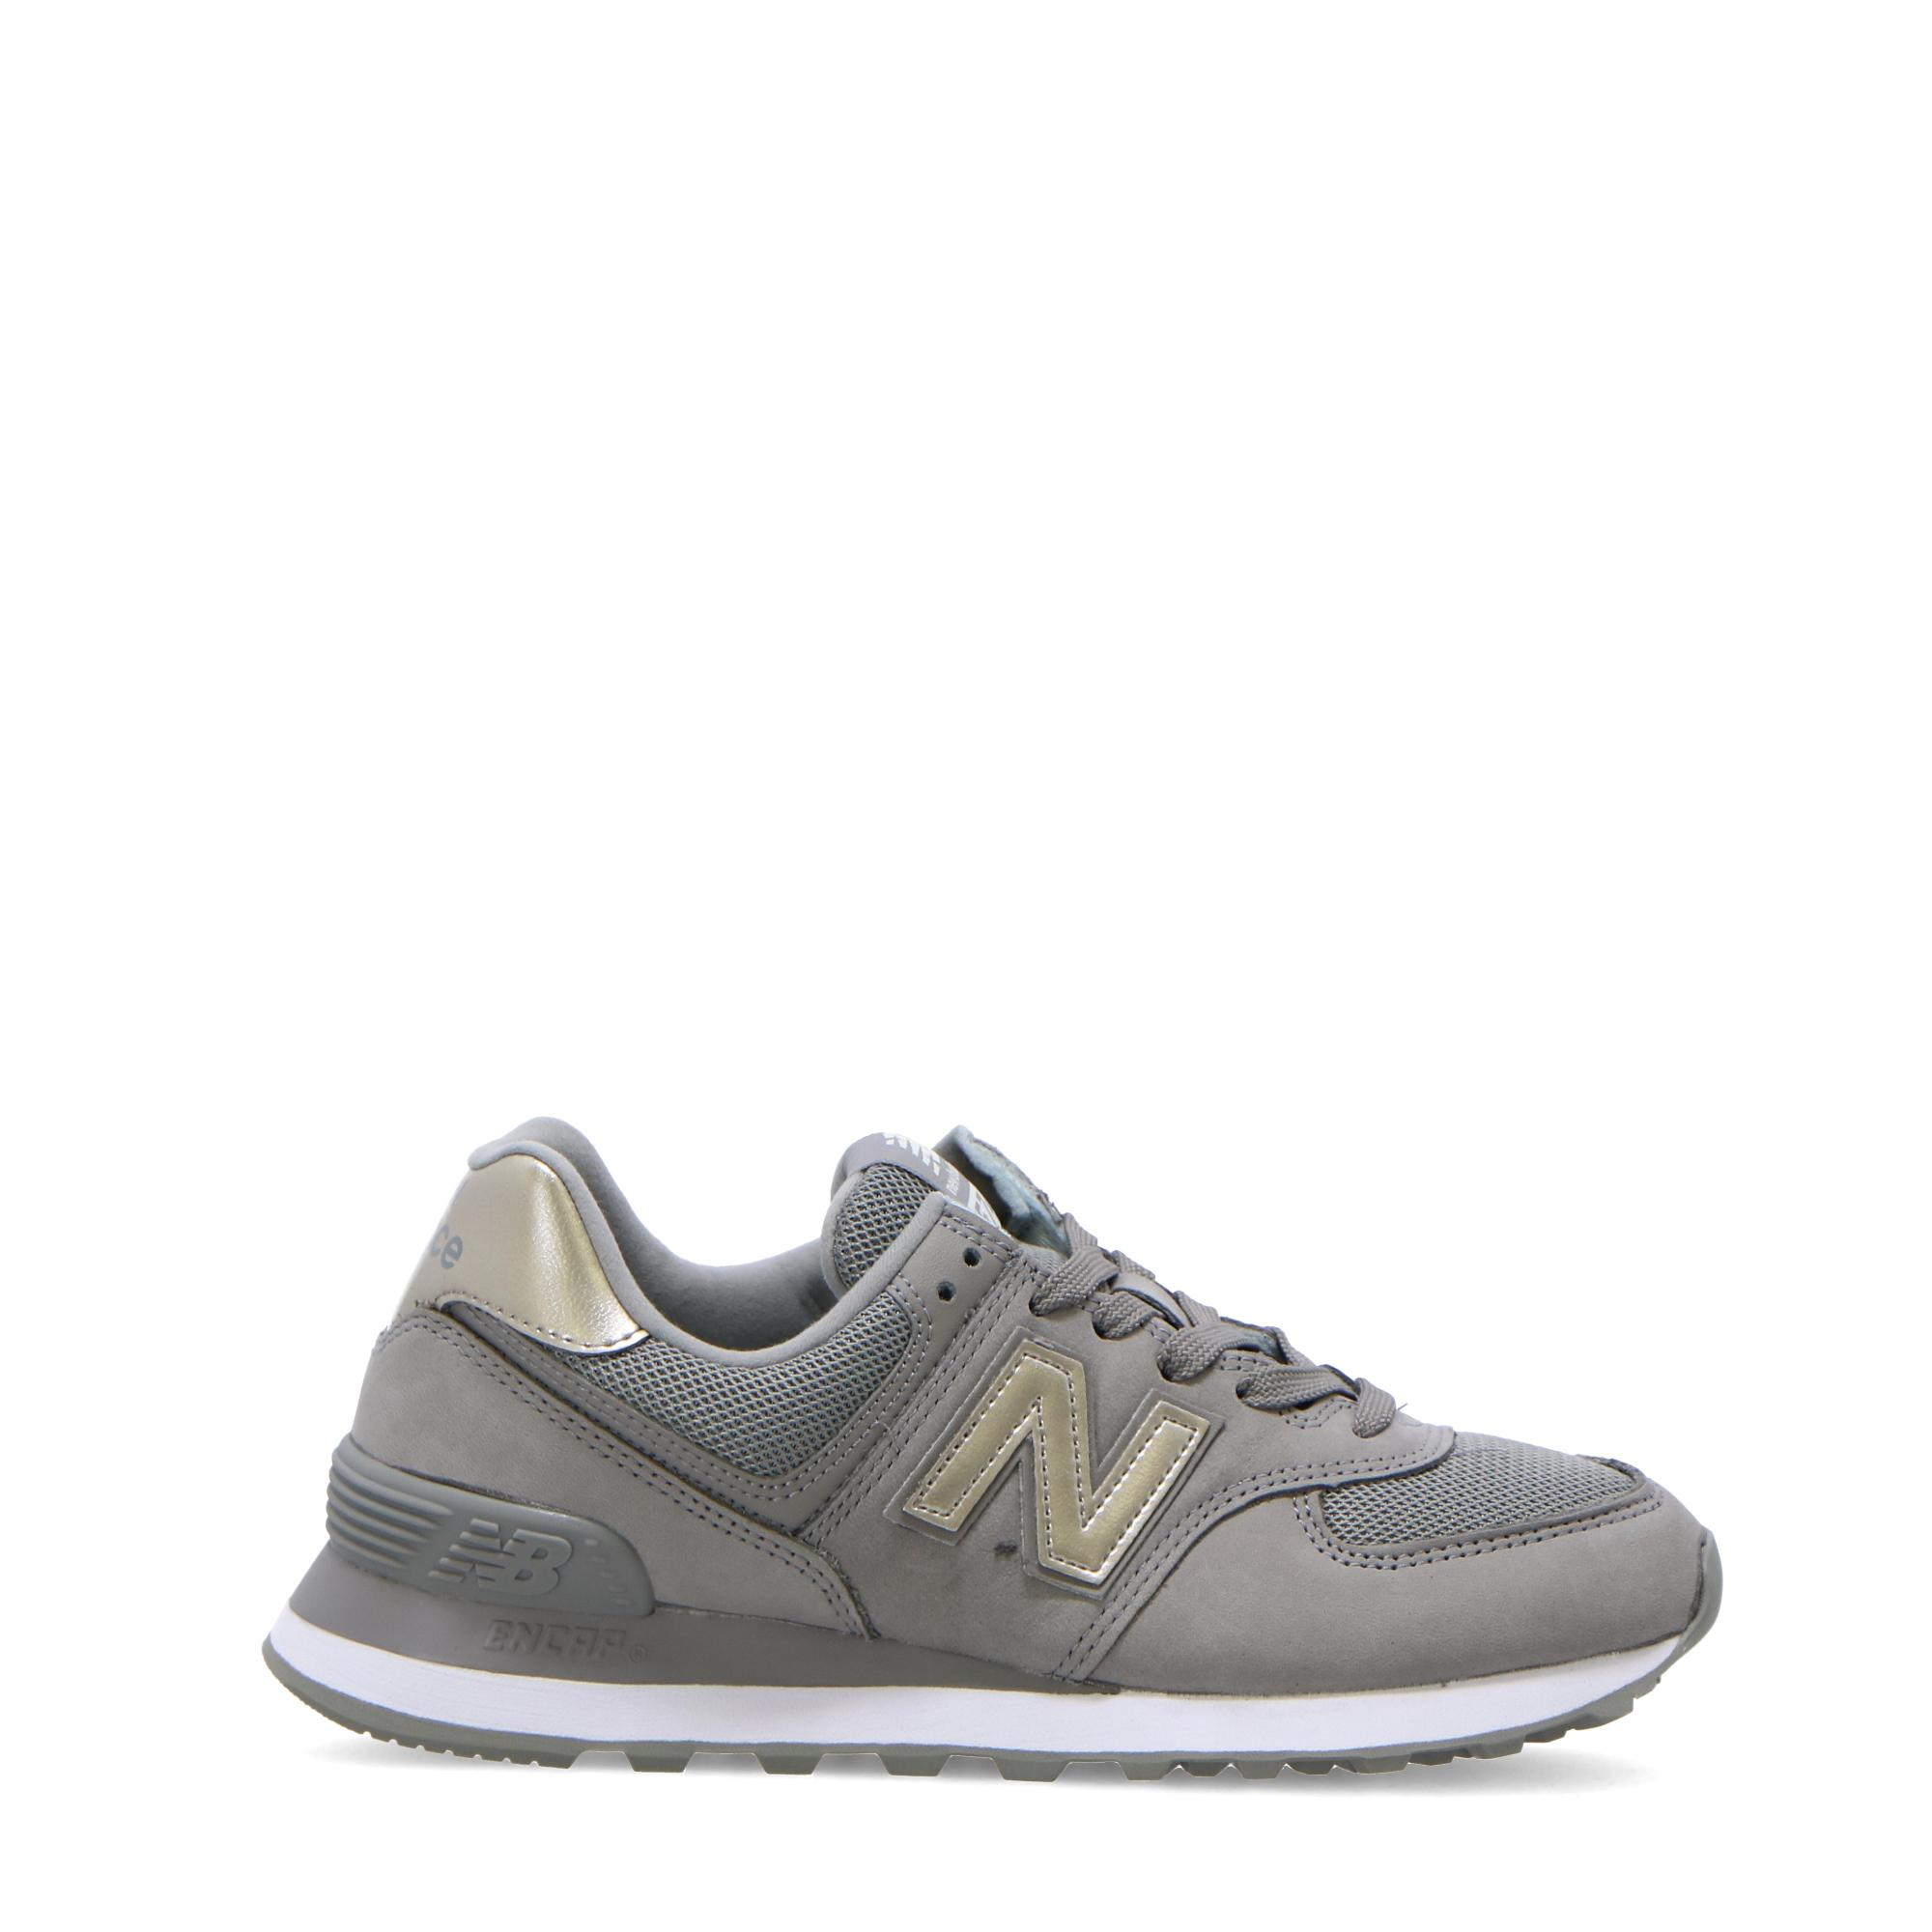 uk availability 5aa57 182e9 NEW BALANCE 574 METALLIC LEATHER